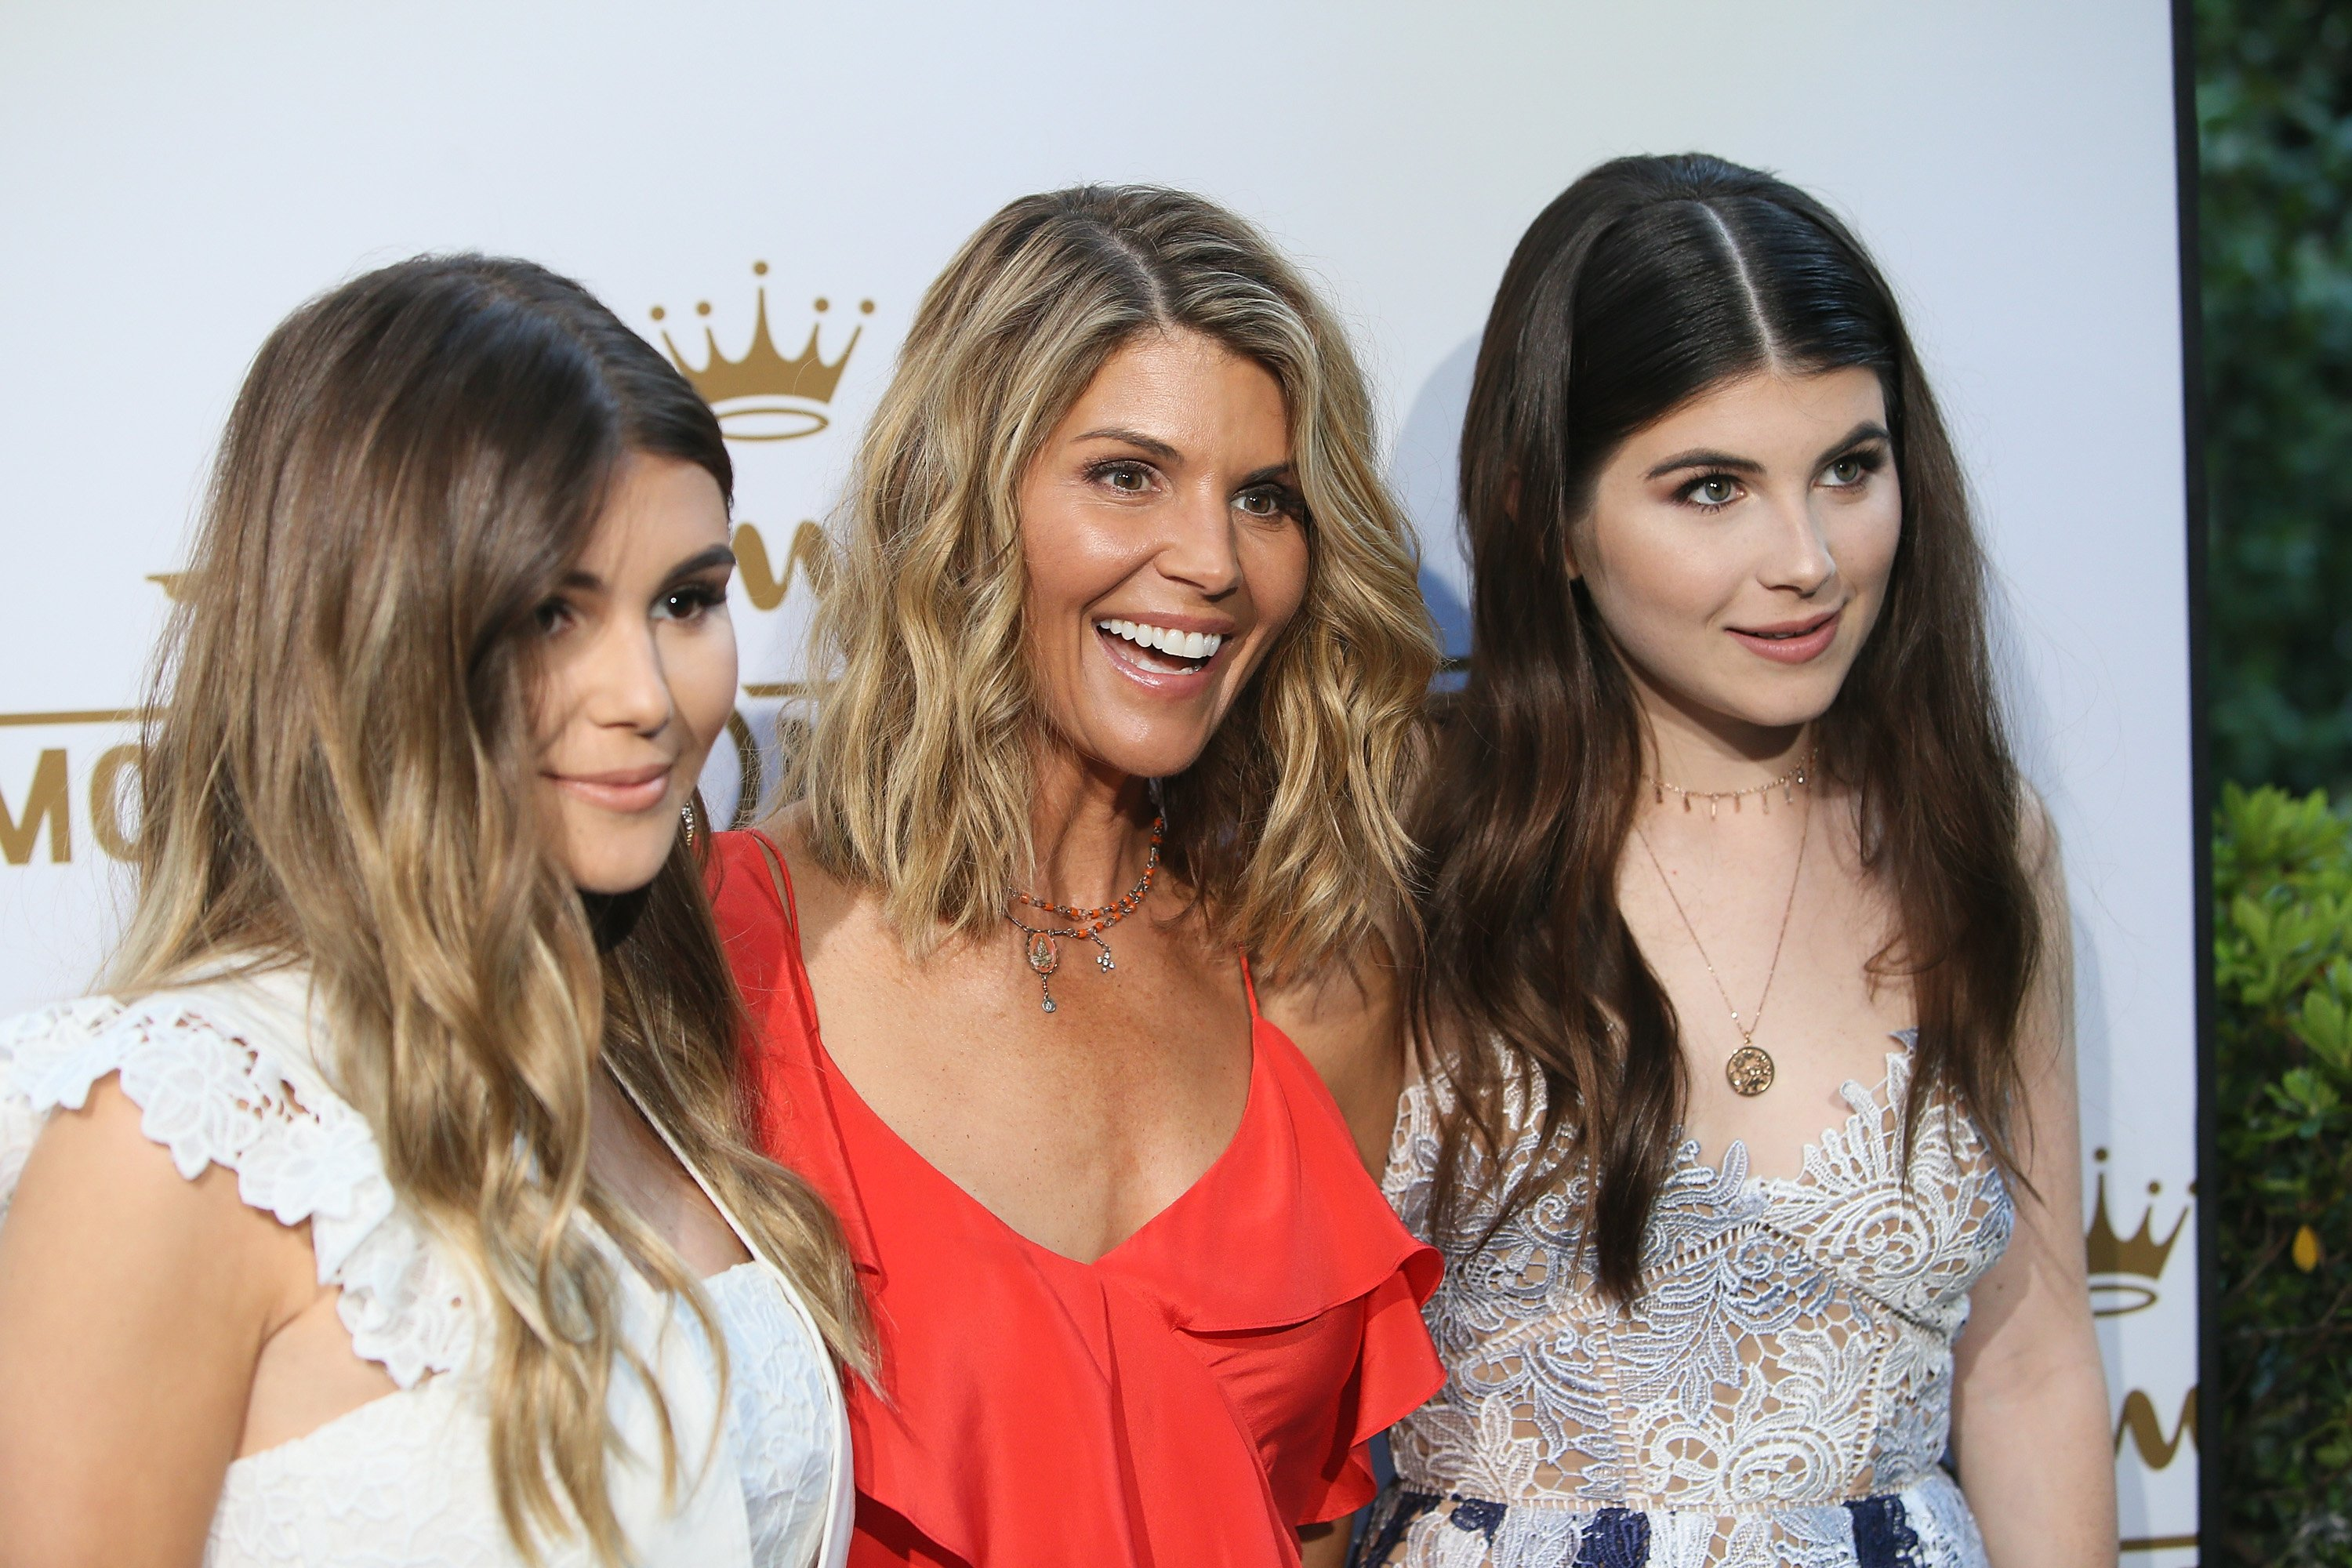 Actress Lori Loughlin, Isabella Rose and Olivia Jade Giannulli attend the Hallmark Channel and Hallmark Movies and Mysteries 2017 Summer TCA Tour on July 27, 2017, in Beverly Hills, California. | Source: Getty Images.